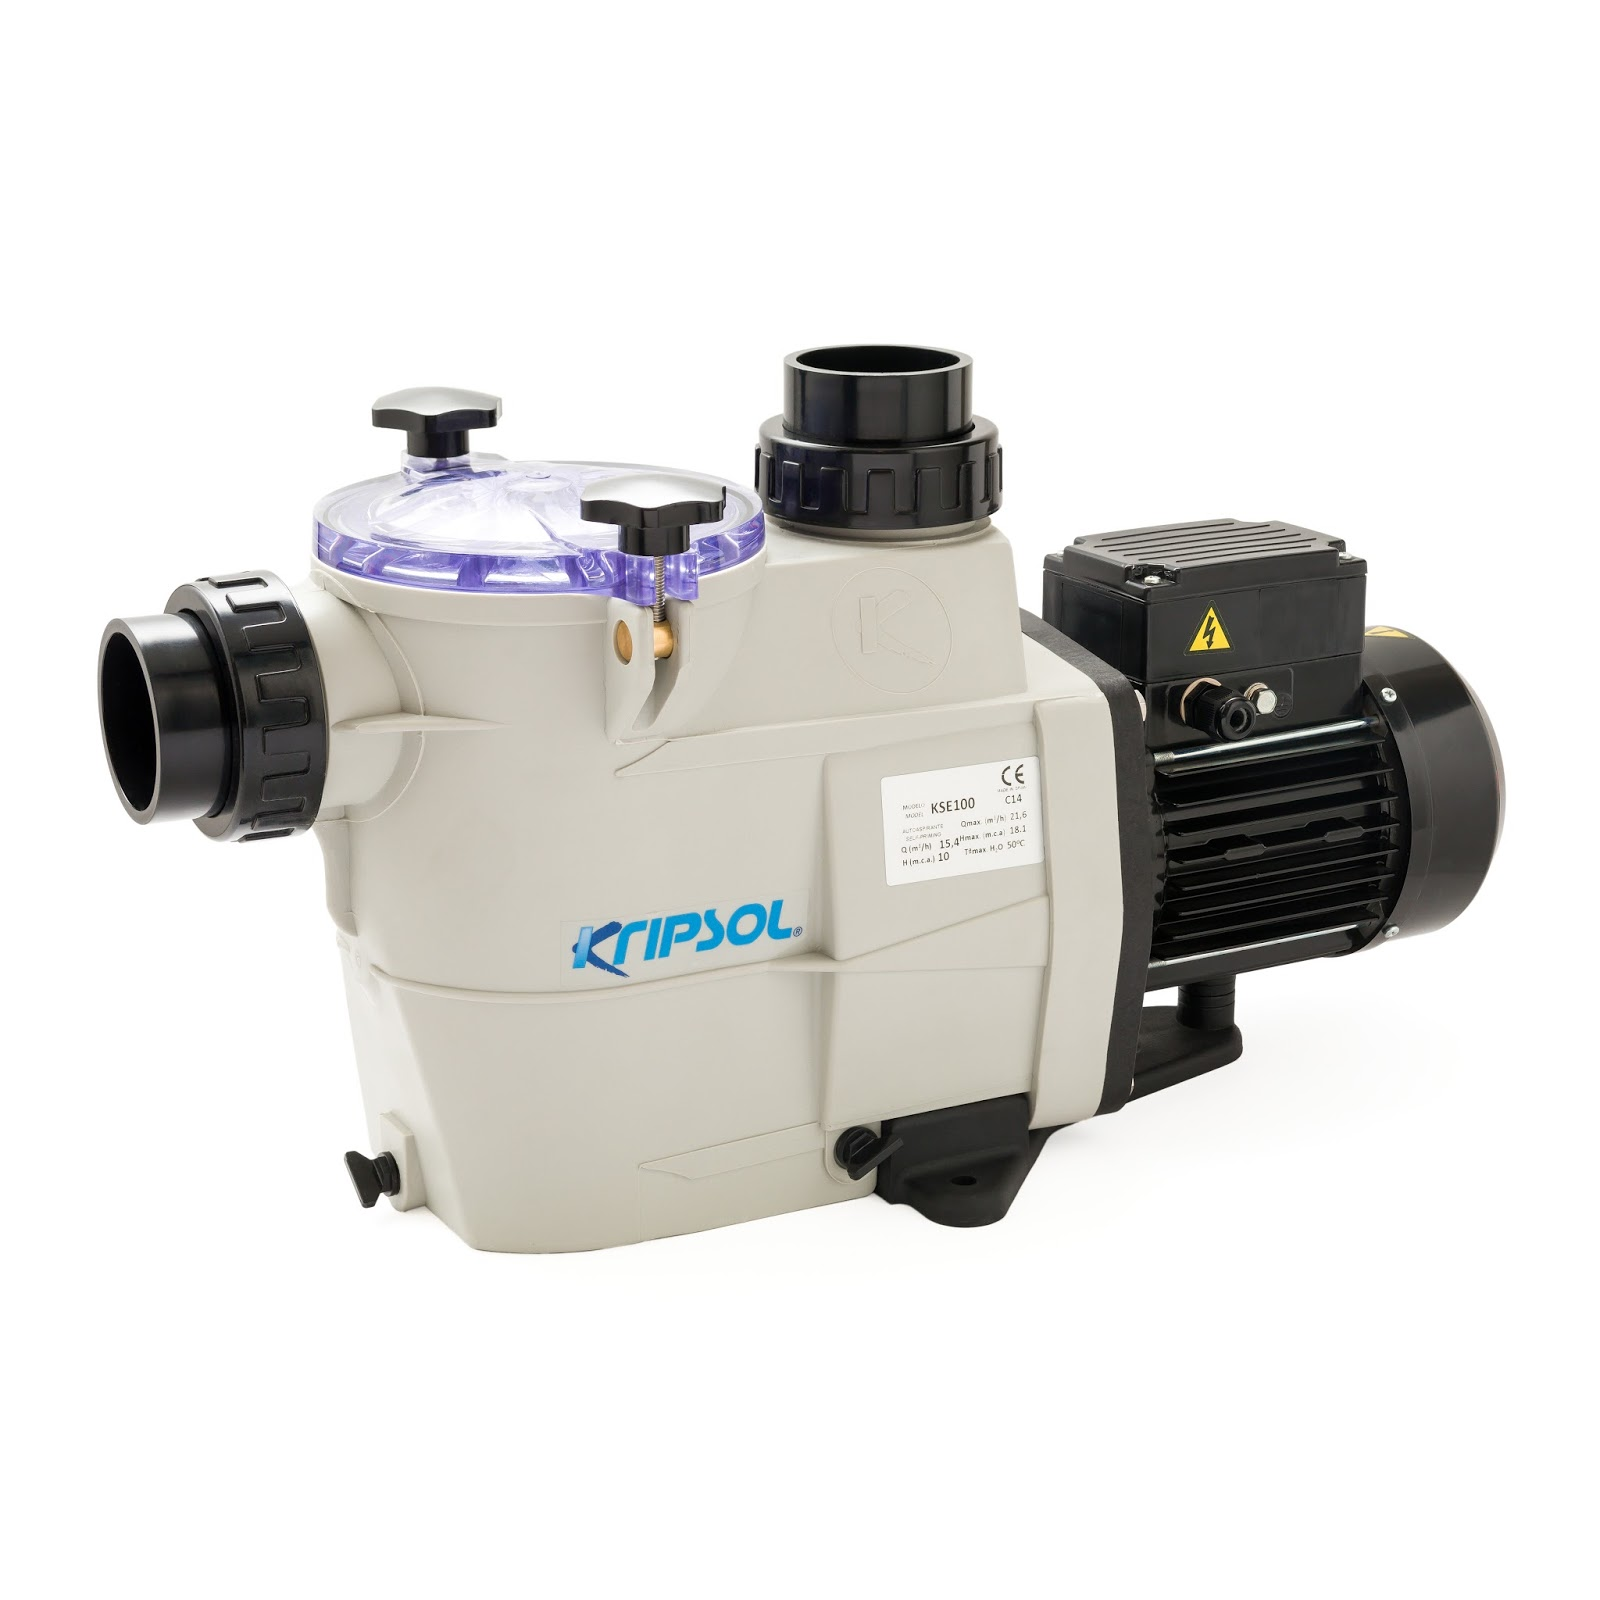 Swimming Pool Filter Pump Price Swimming Pool Companies In Dubai Swimming Pool Builders In Dubai